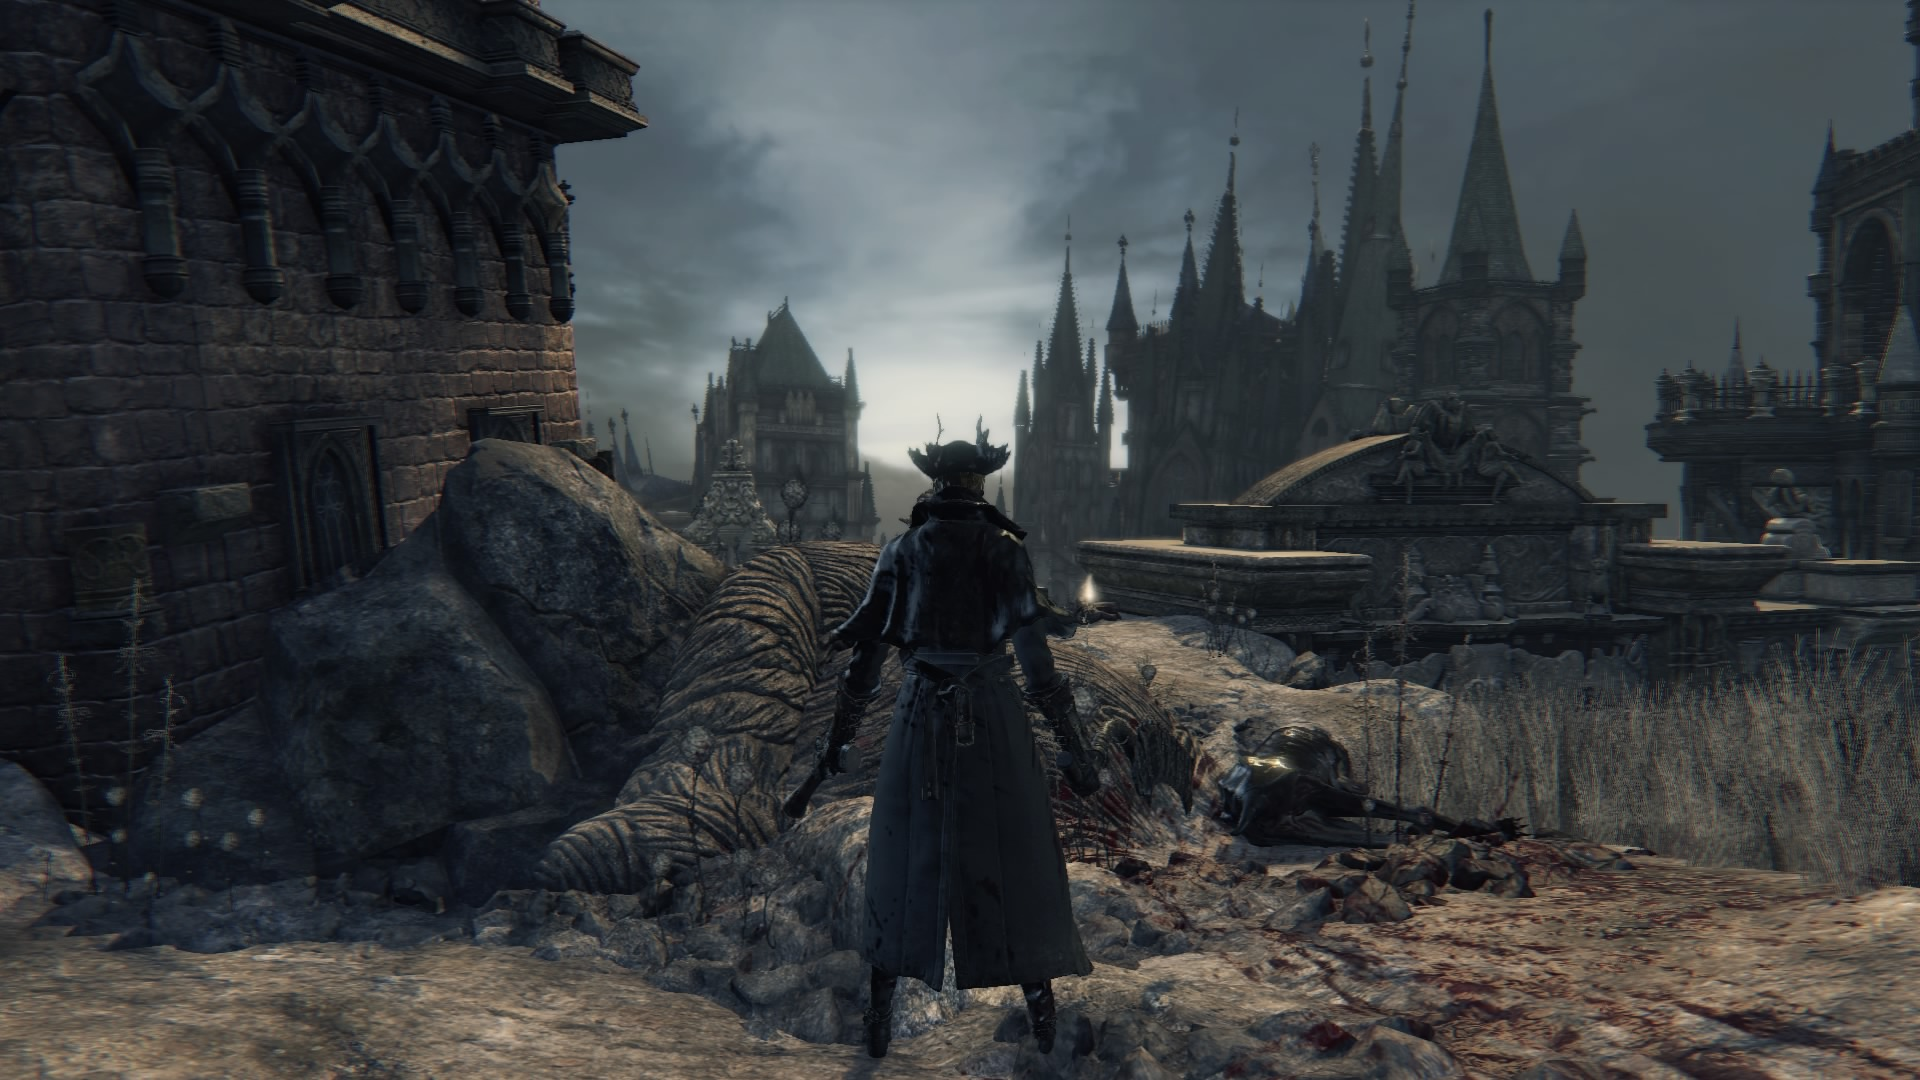 Yharnam's Patch of White